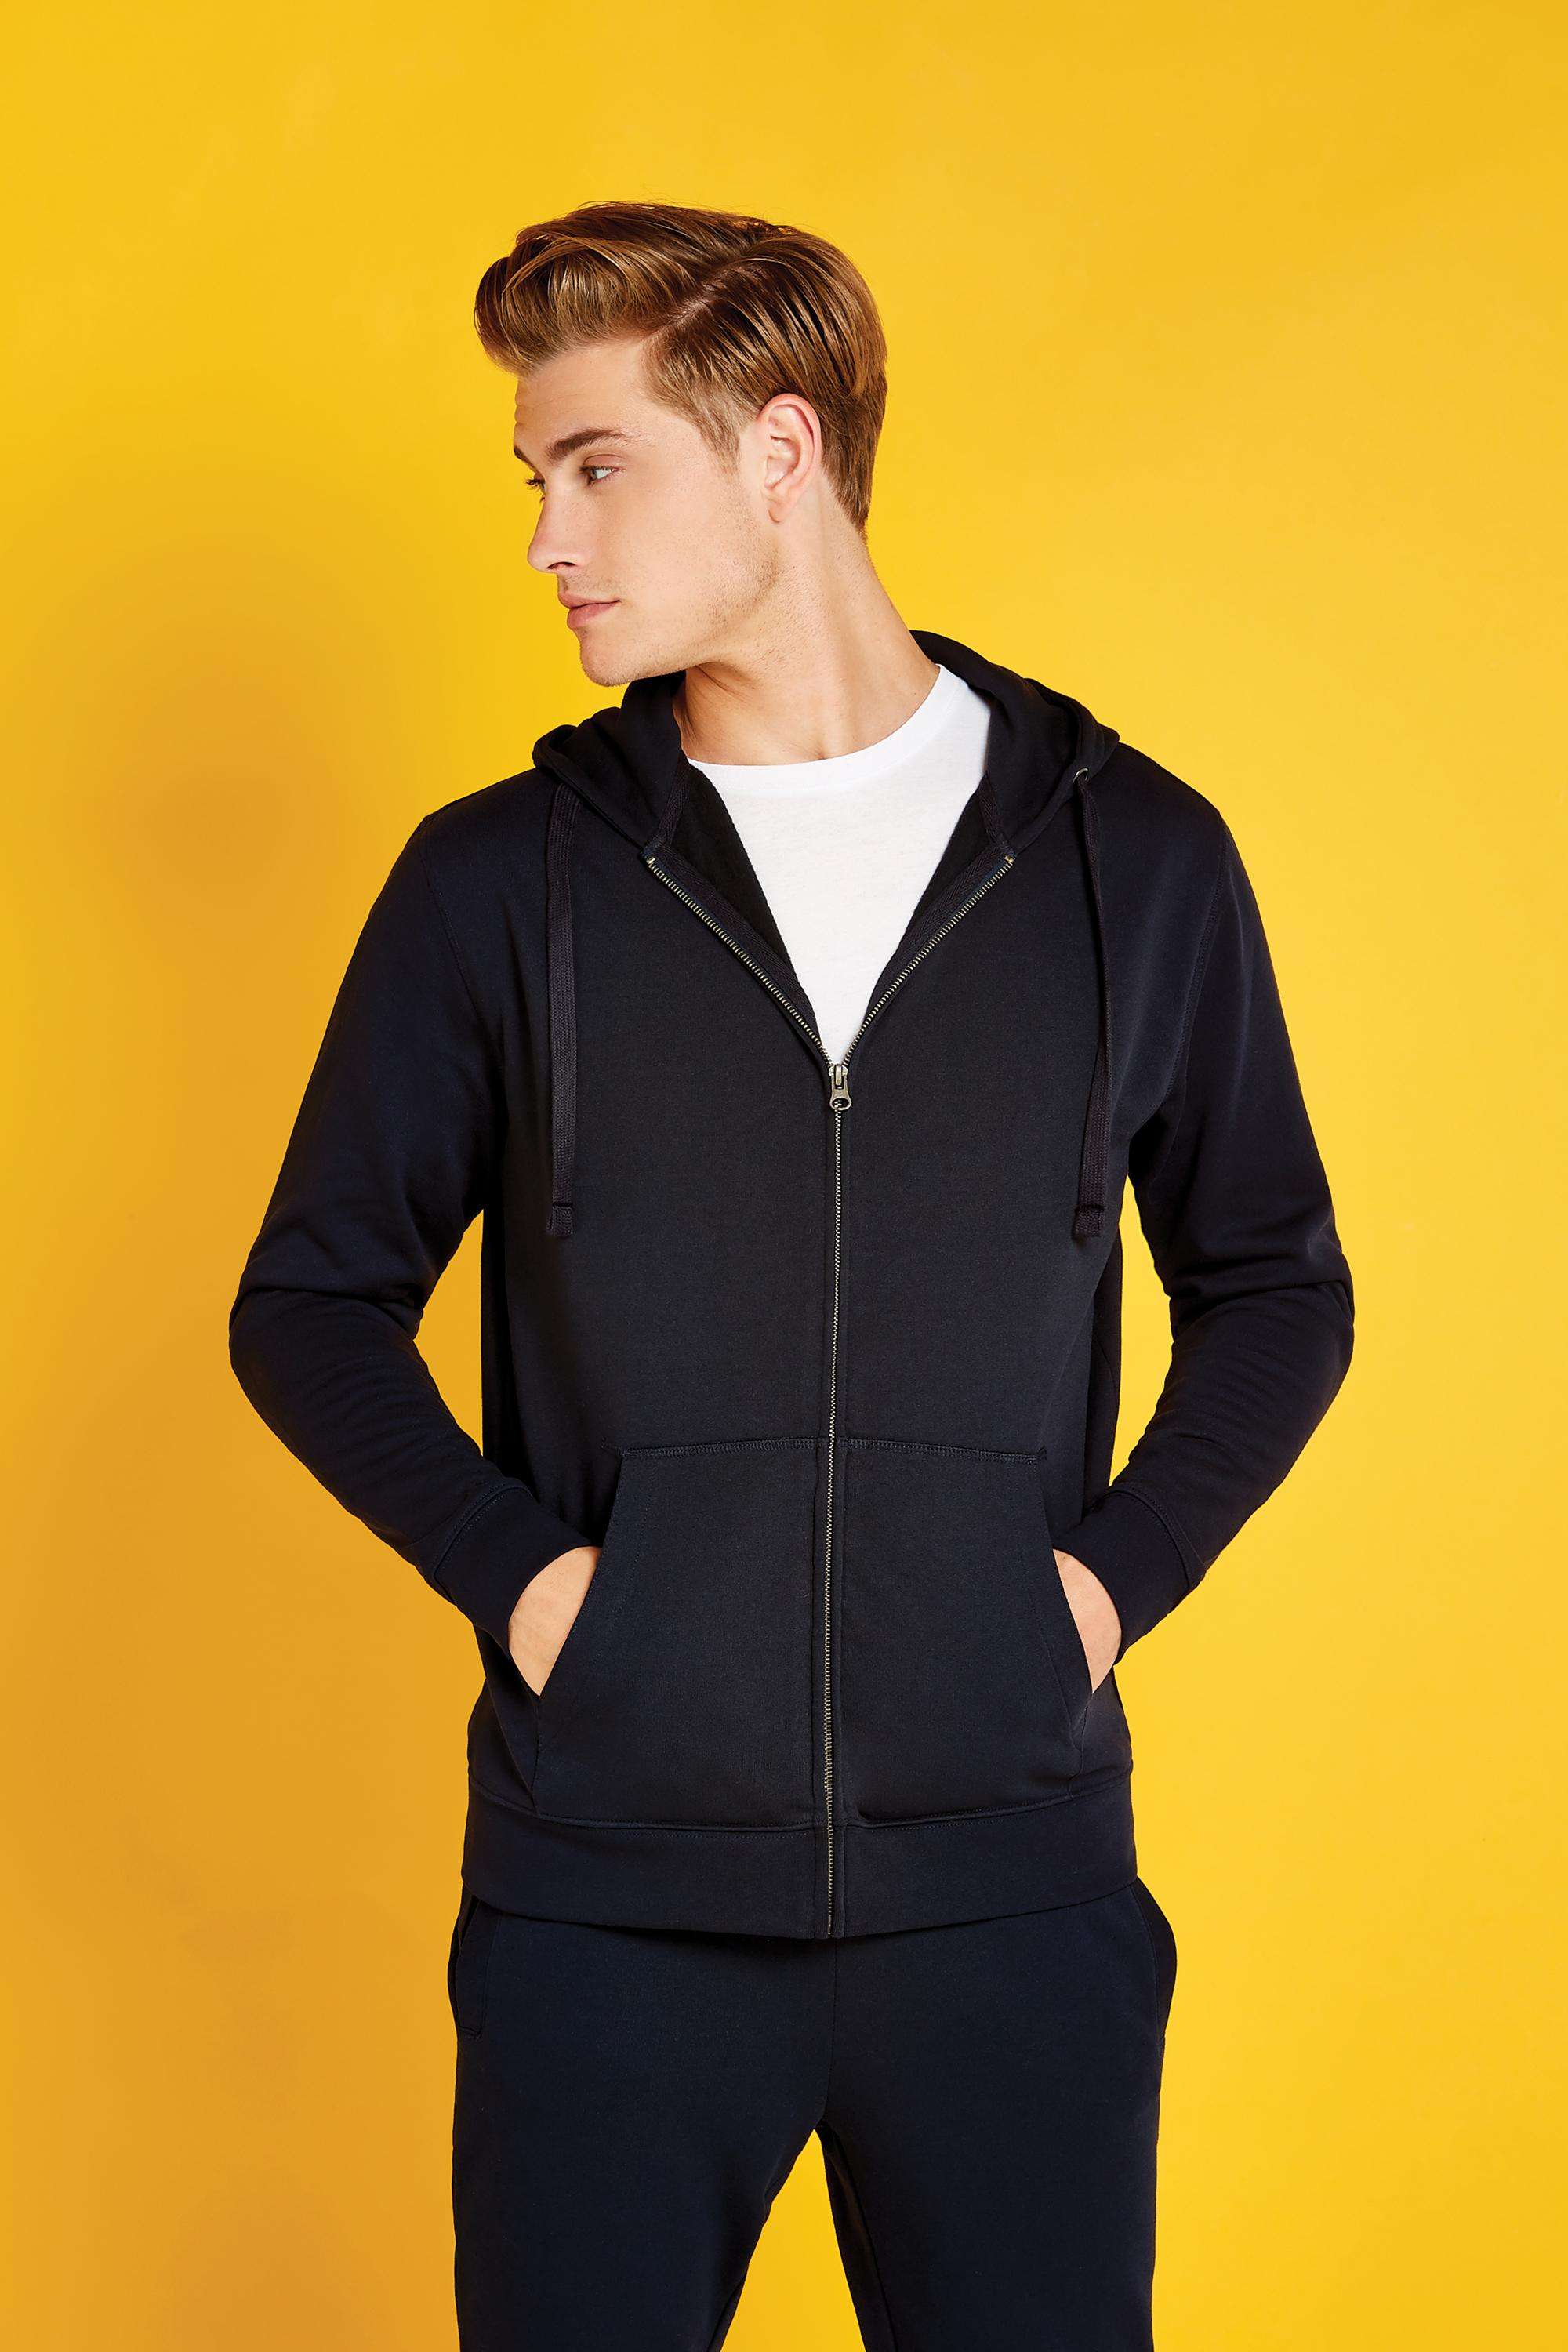 K303 Kustom Kit Zipped Hoodie Model